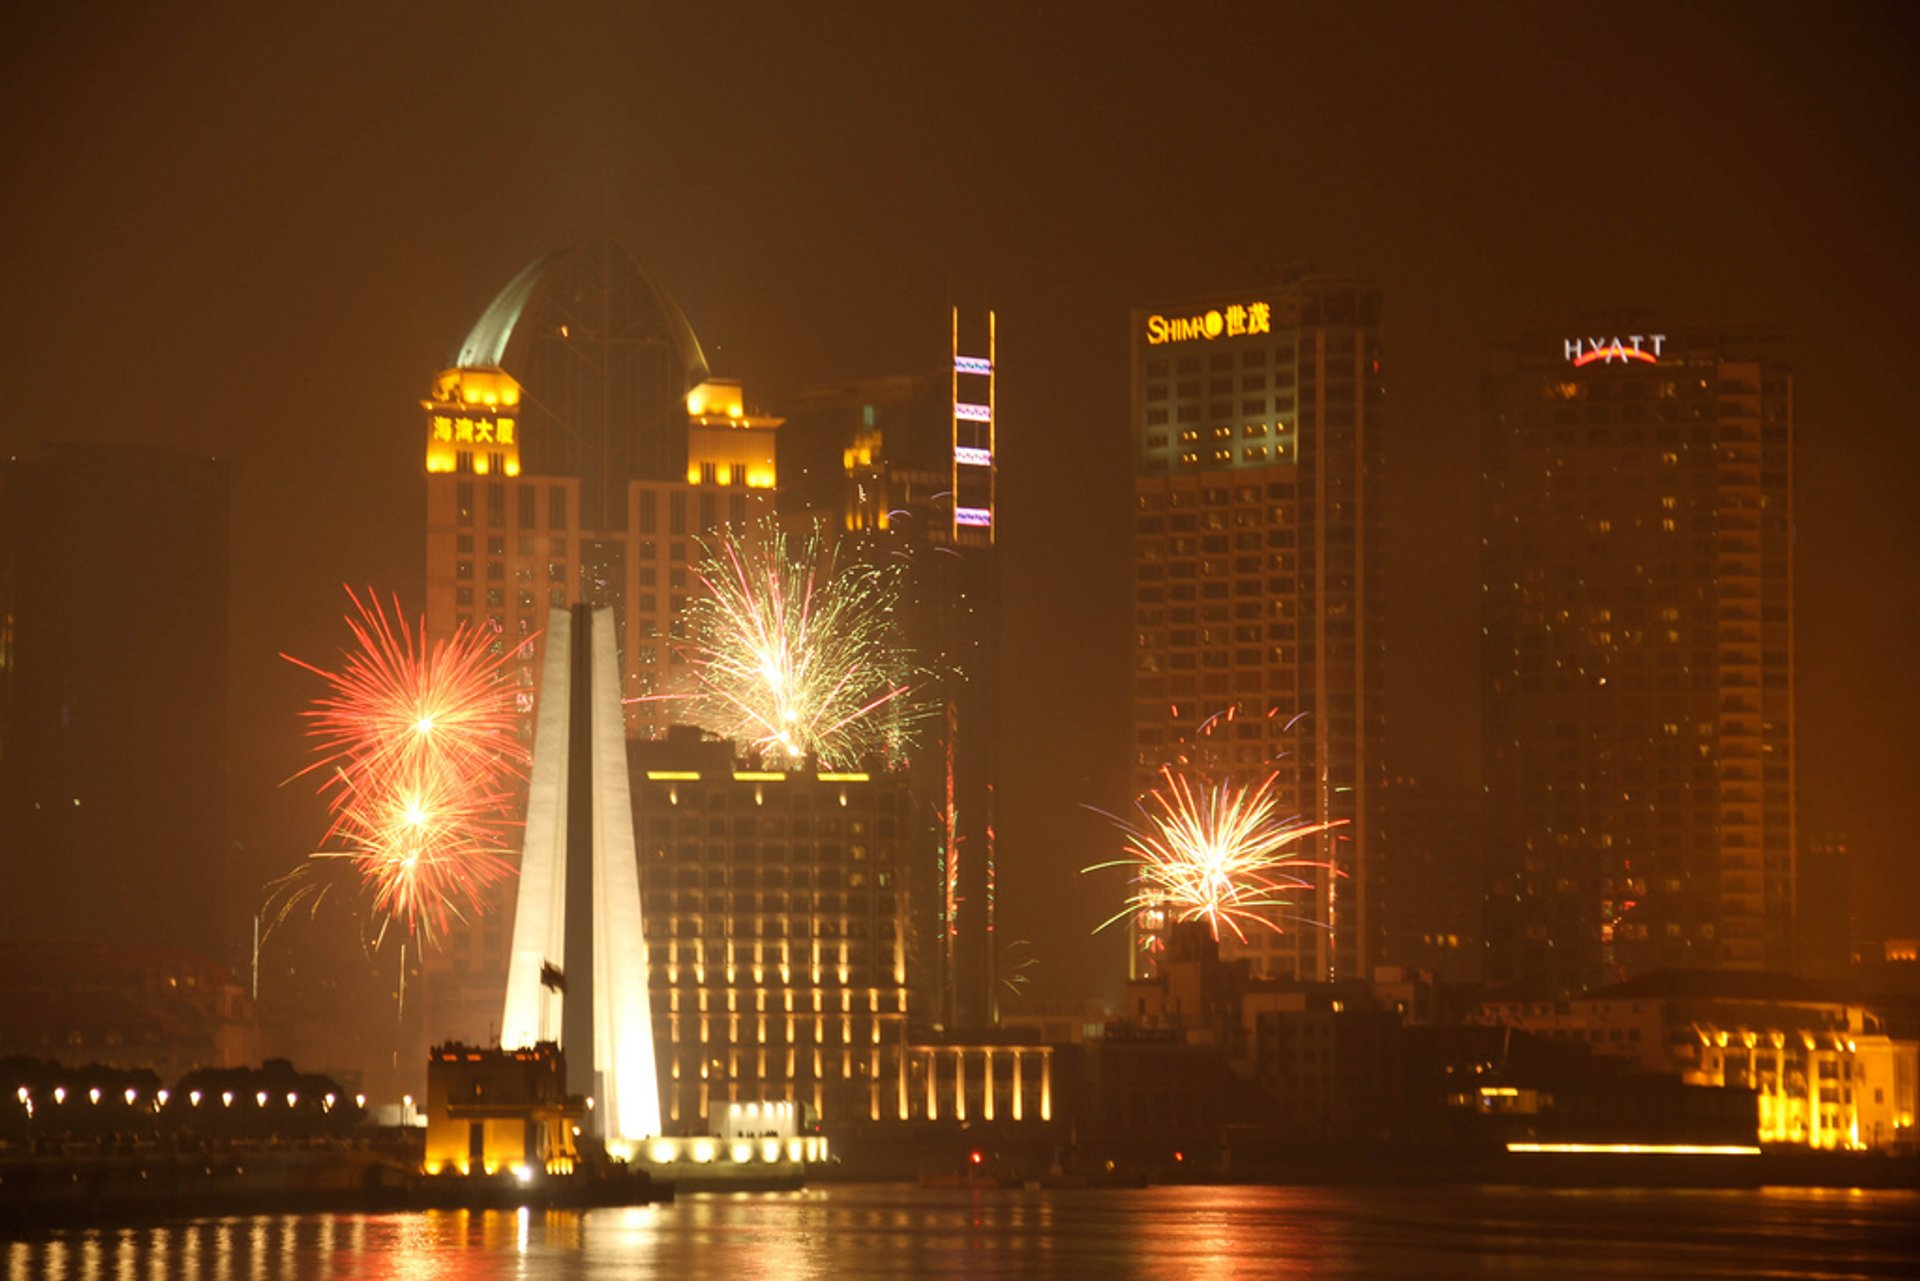 Spring Festival or Chinese New Year in Shanghai - Best Season 2020